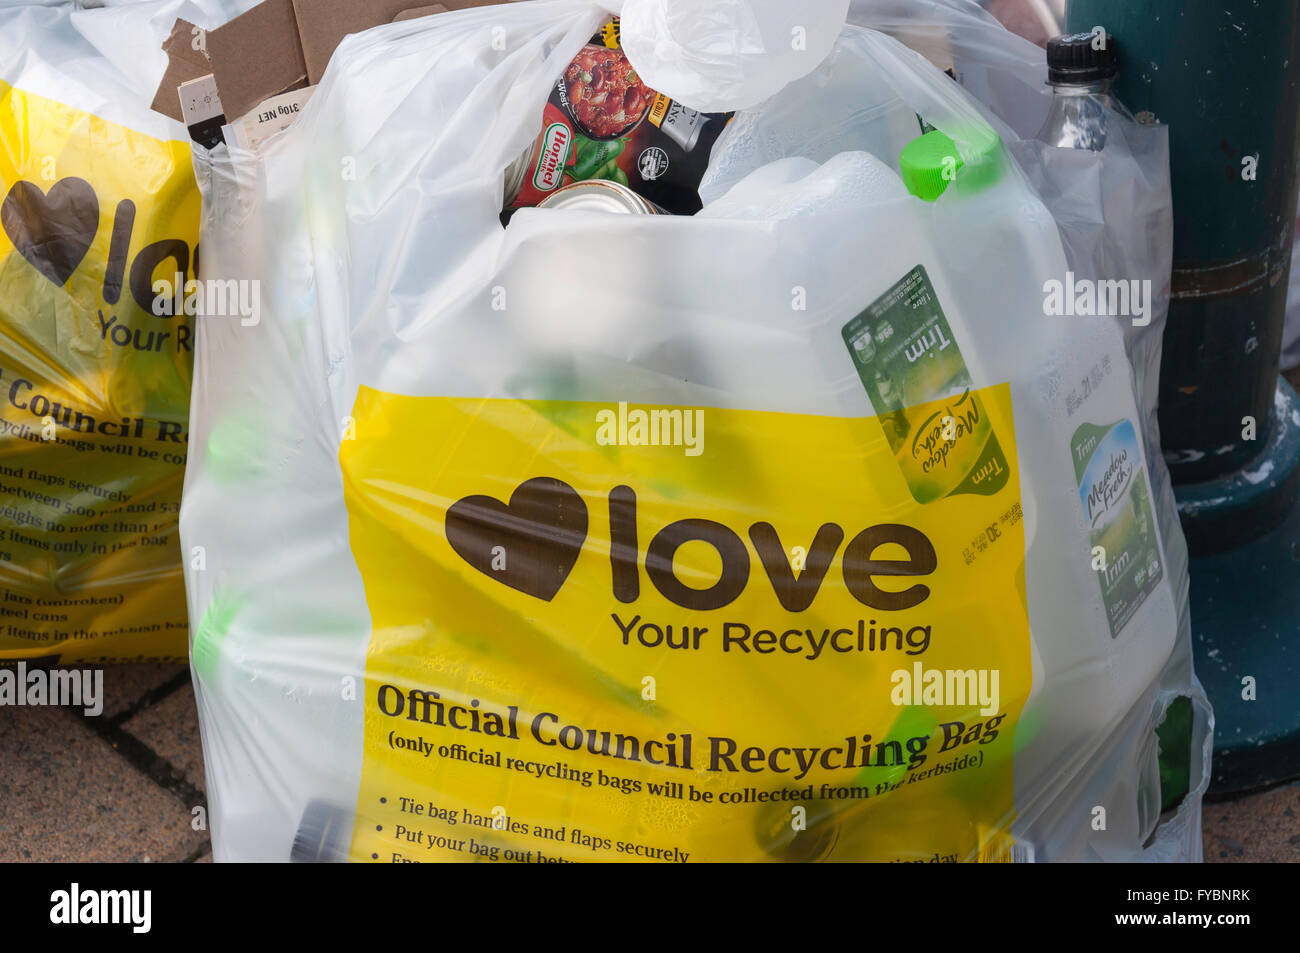 """Love your recycling"" Christchurch Council bag, Worcester Boulevard, Christchurch, Canterbury, New Zealand - Stock Image"